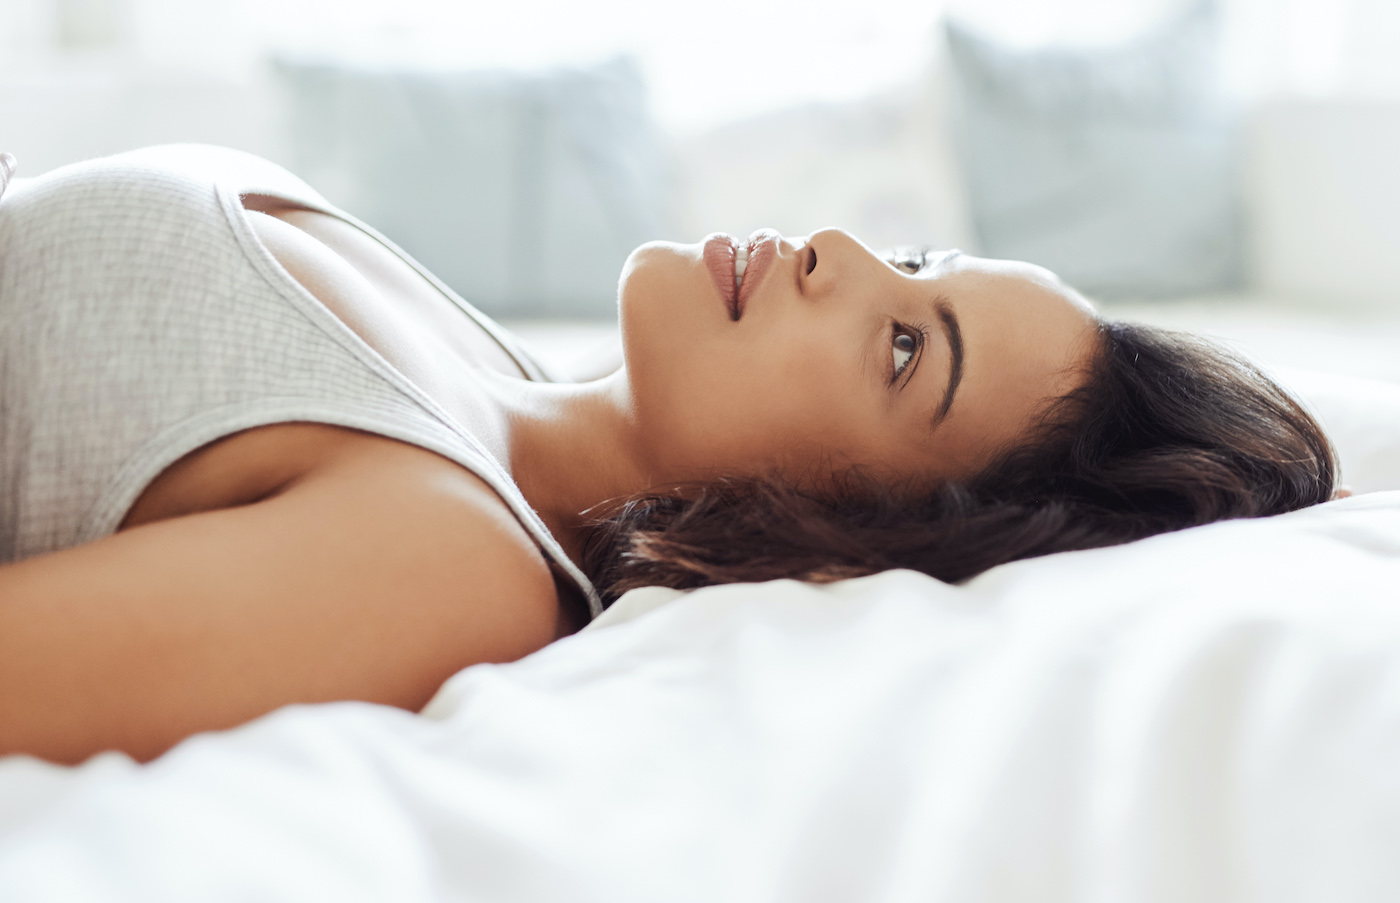 I'm A Sex Coach, And These Are my 7 Best Tips for Overcoming Sexual Hang-Ups and Roadblocks